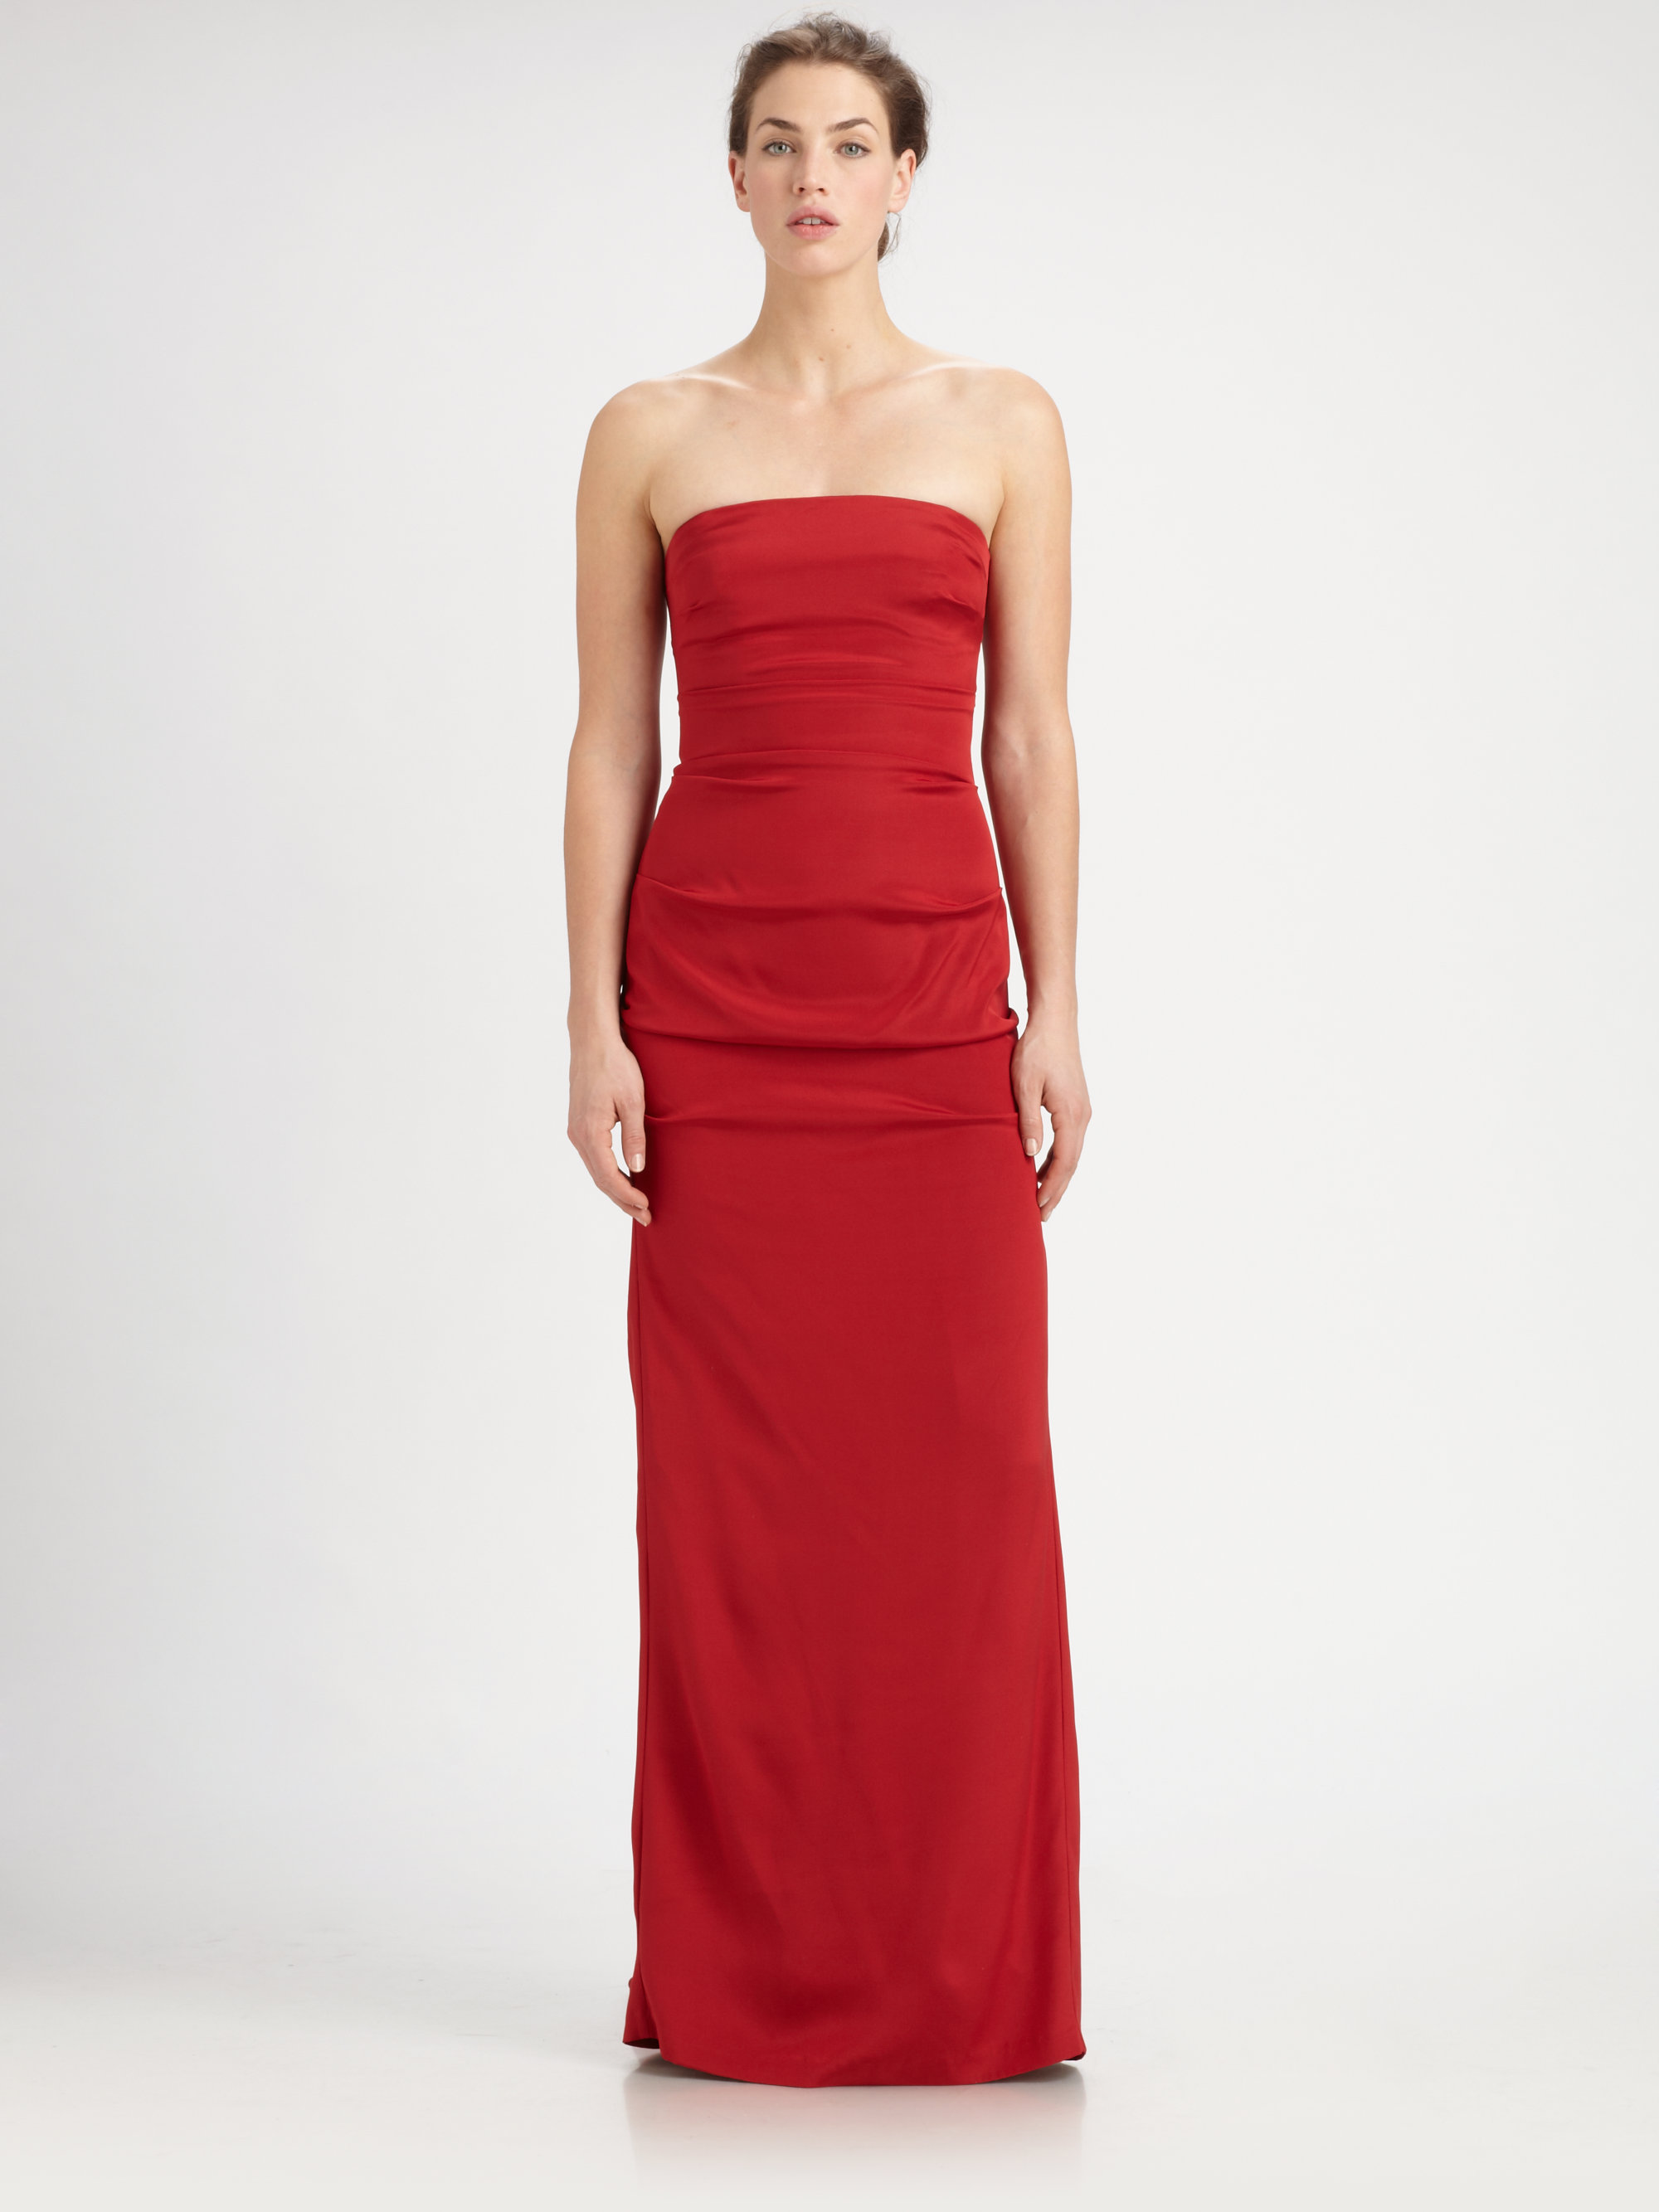 Lyst - Nicole Miller Strapless Gown in Red